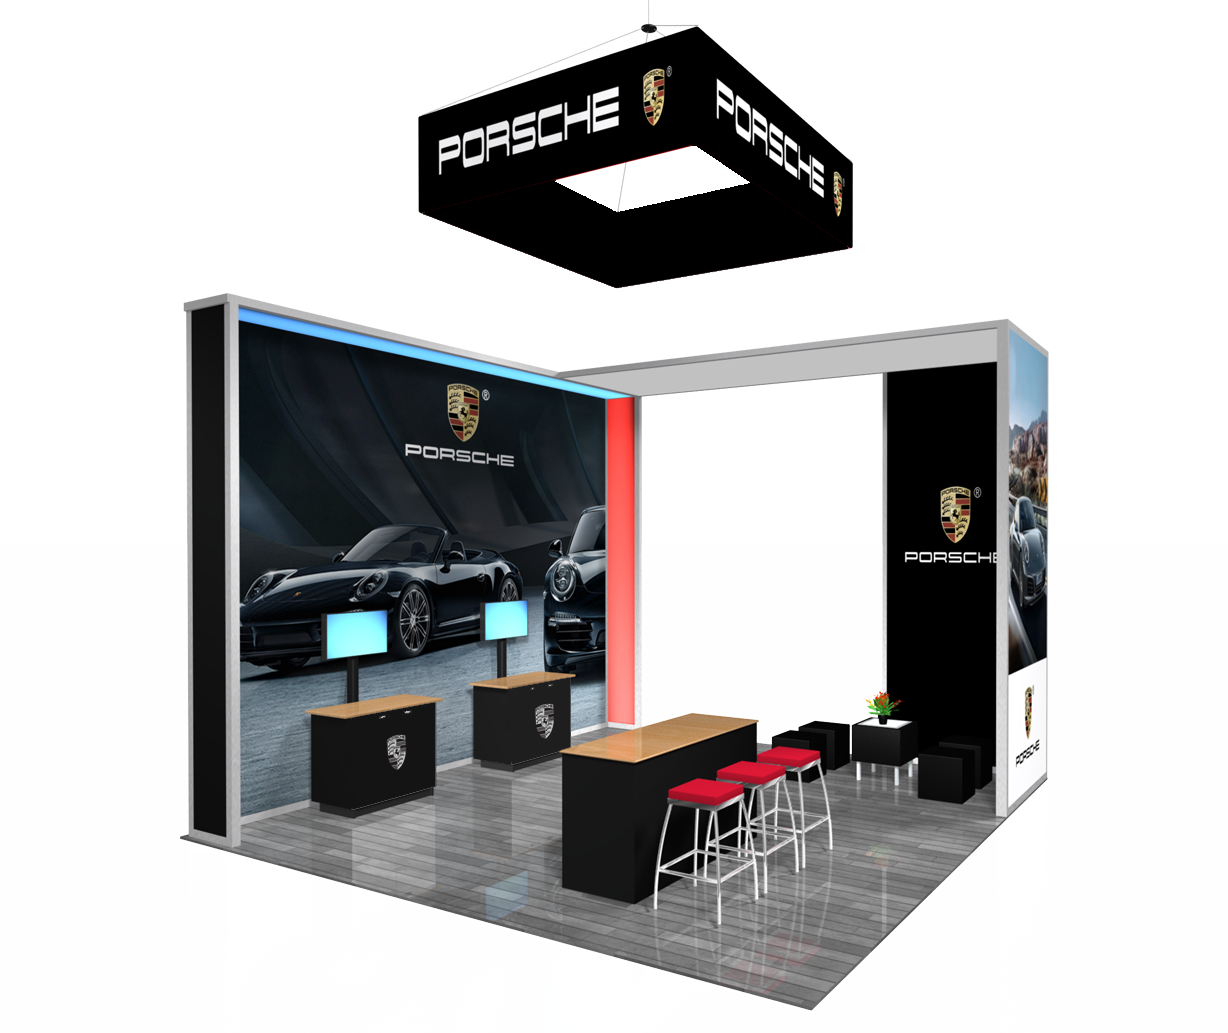 Cut Trade Show Exhibit Cost by 75%